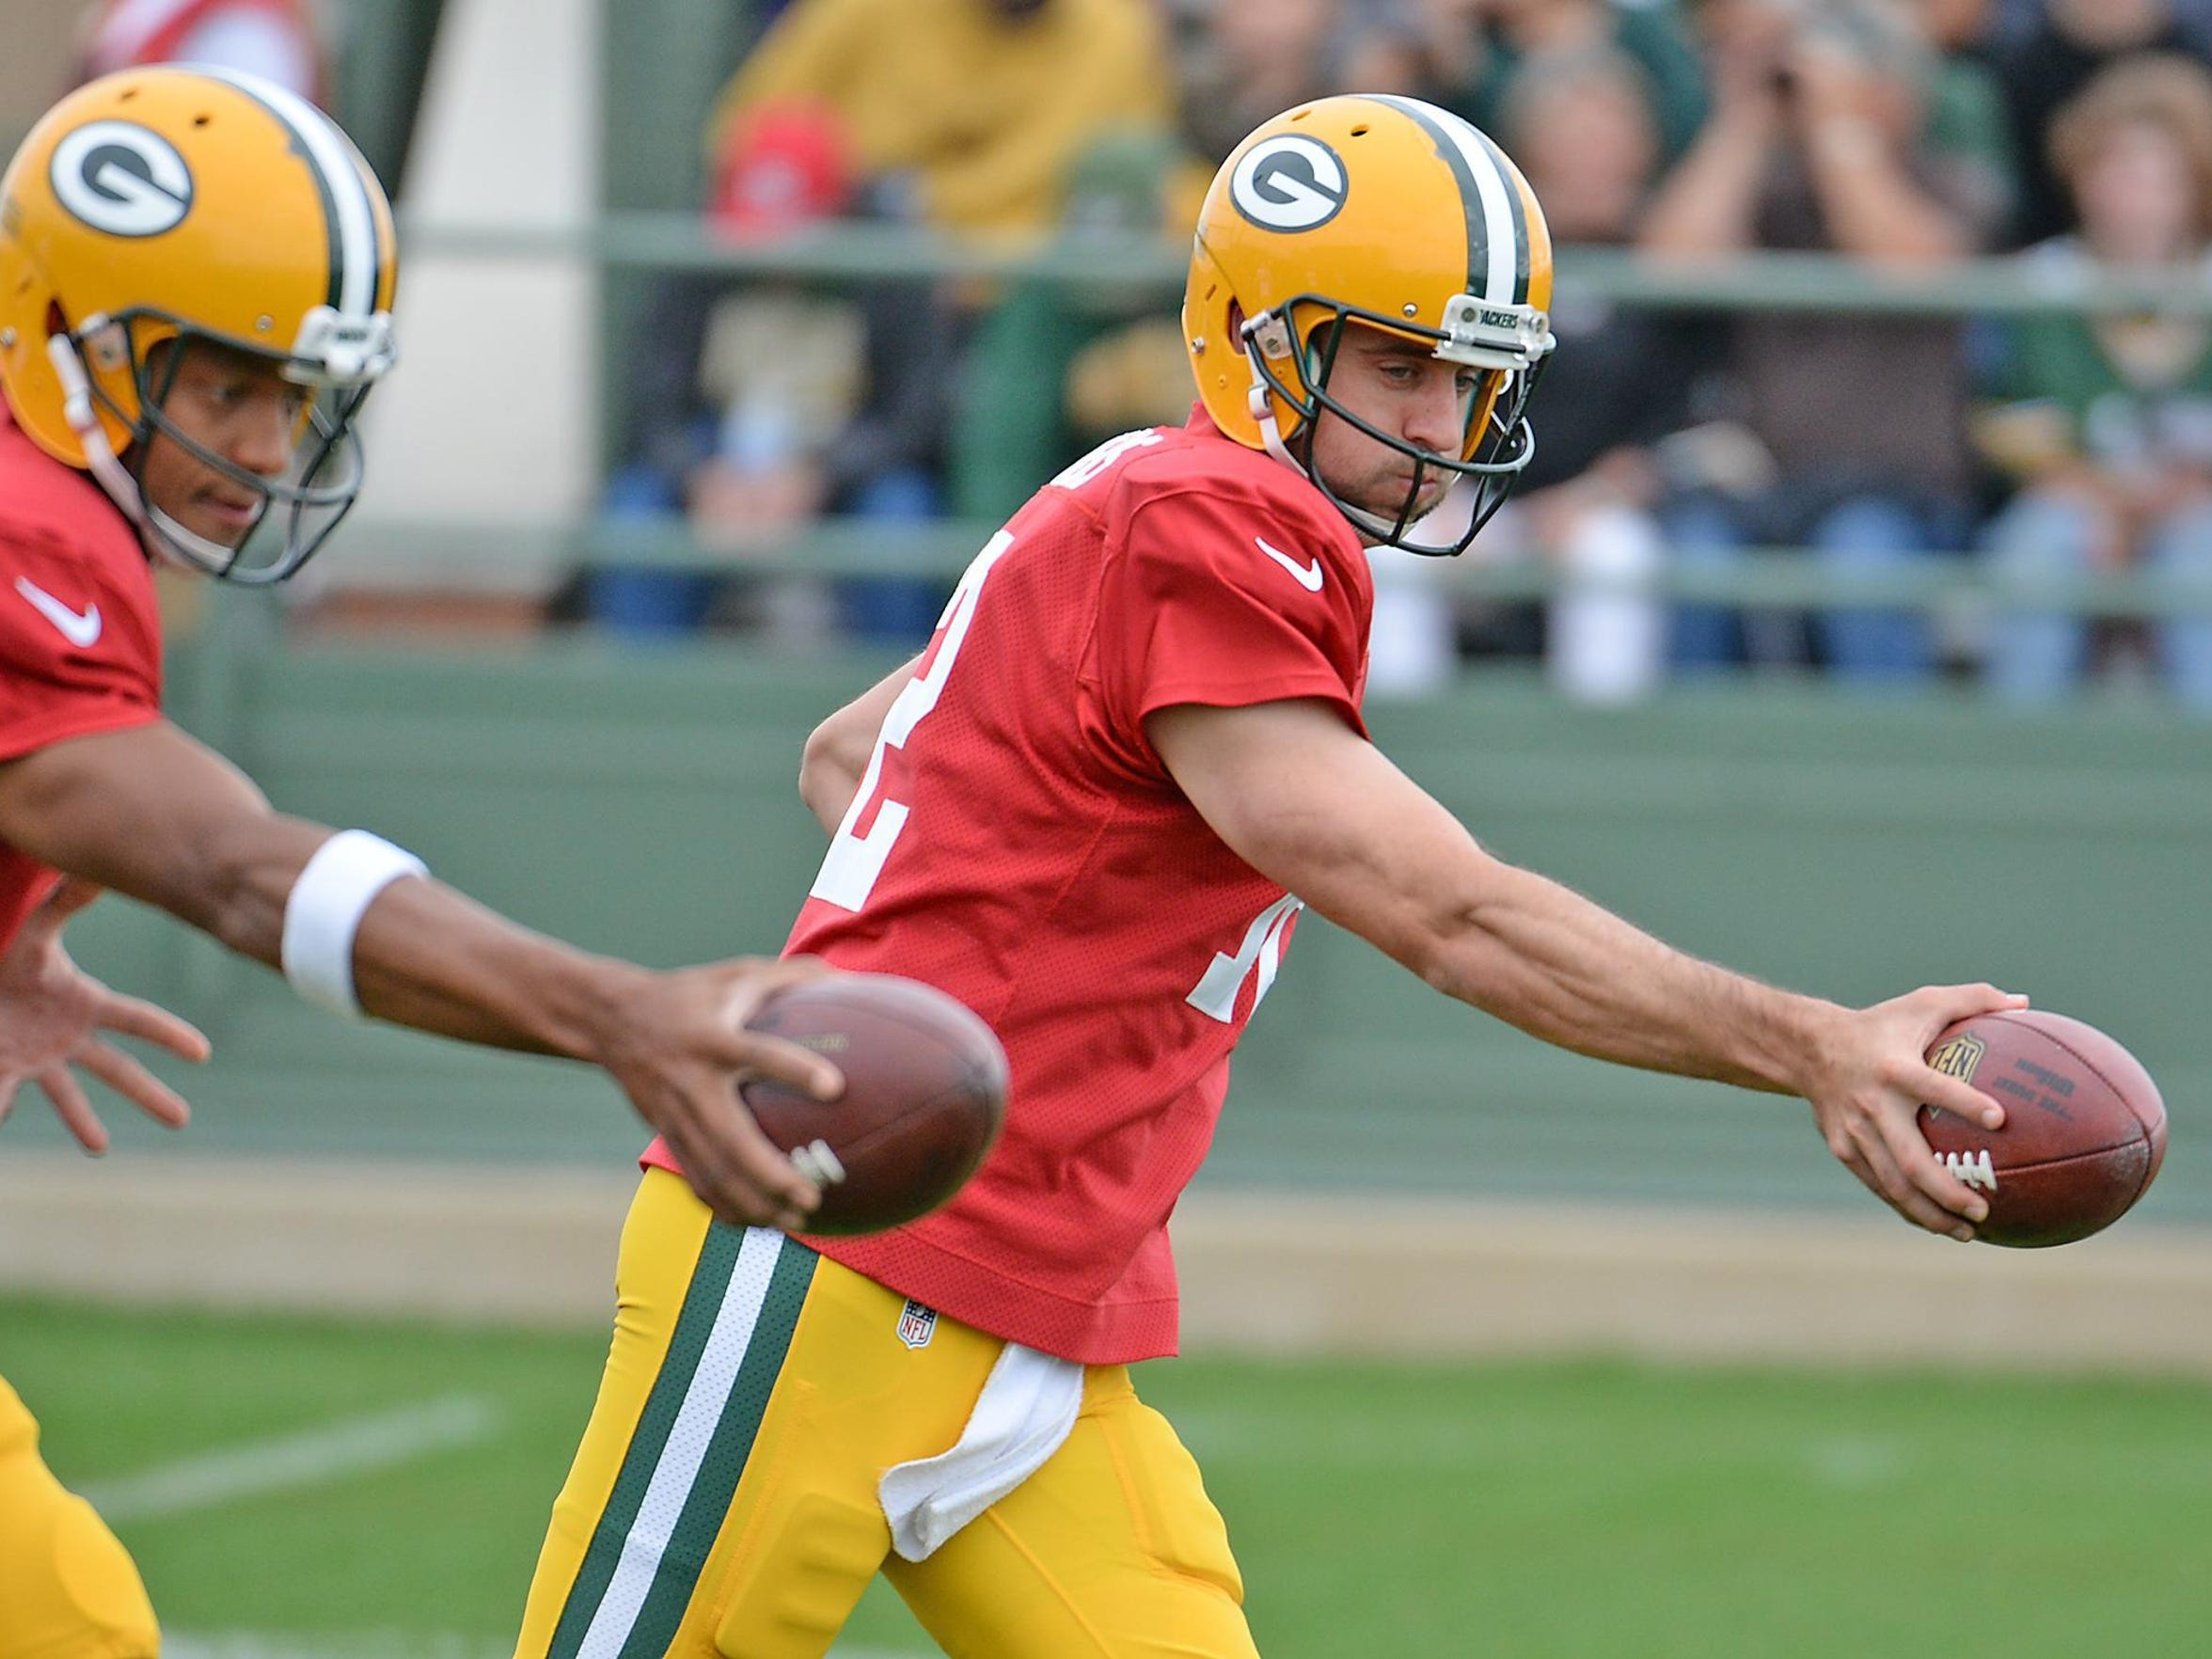 The Green Bay Packers training public practices will draw thousands of onlookers this summer.